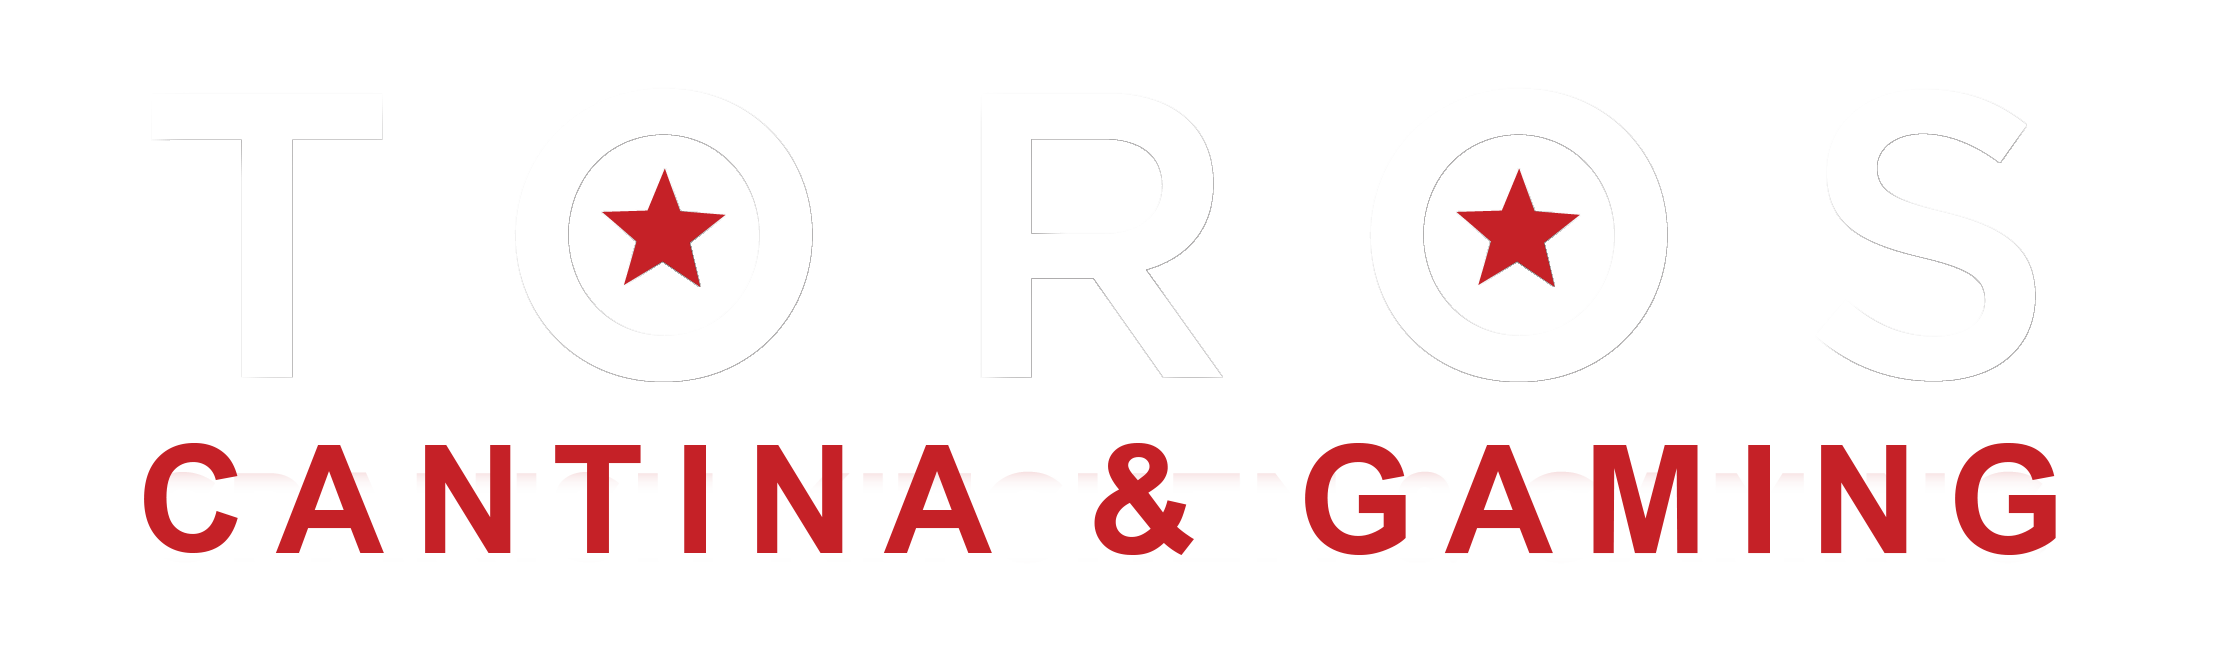 Toros Cantina and Gaming Logo